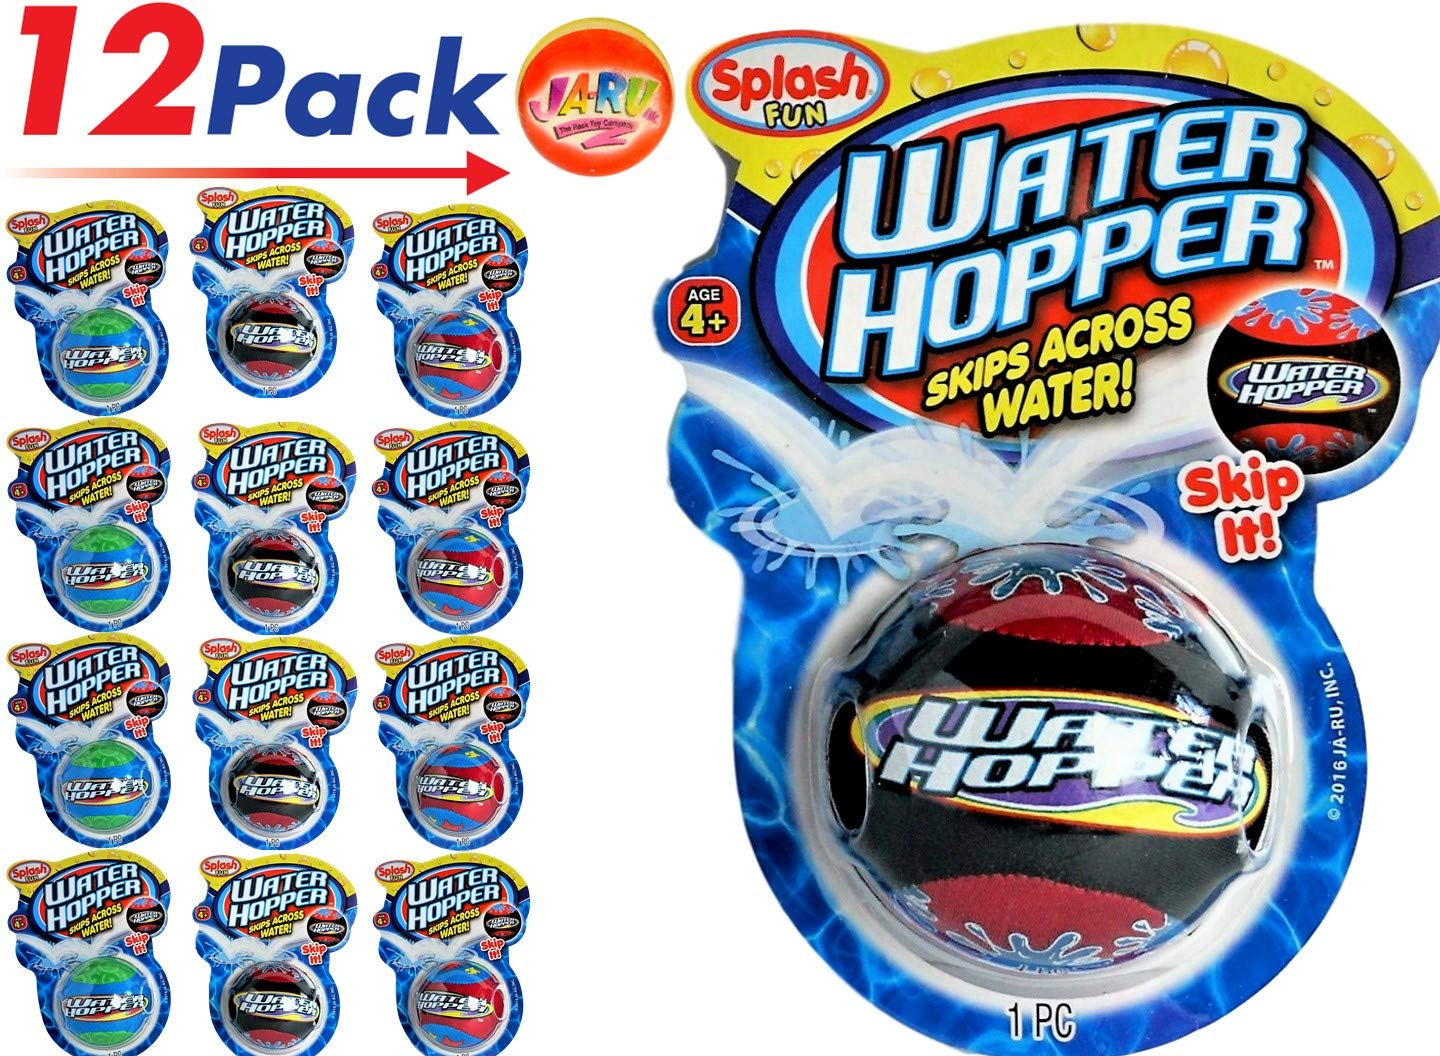 JA-RU Pro Water Hopper Skip it Bouncing Ball (Pack of 12) Bounce & Skips. | Item #880-12p